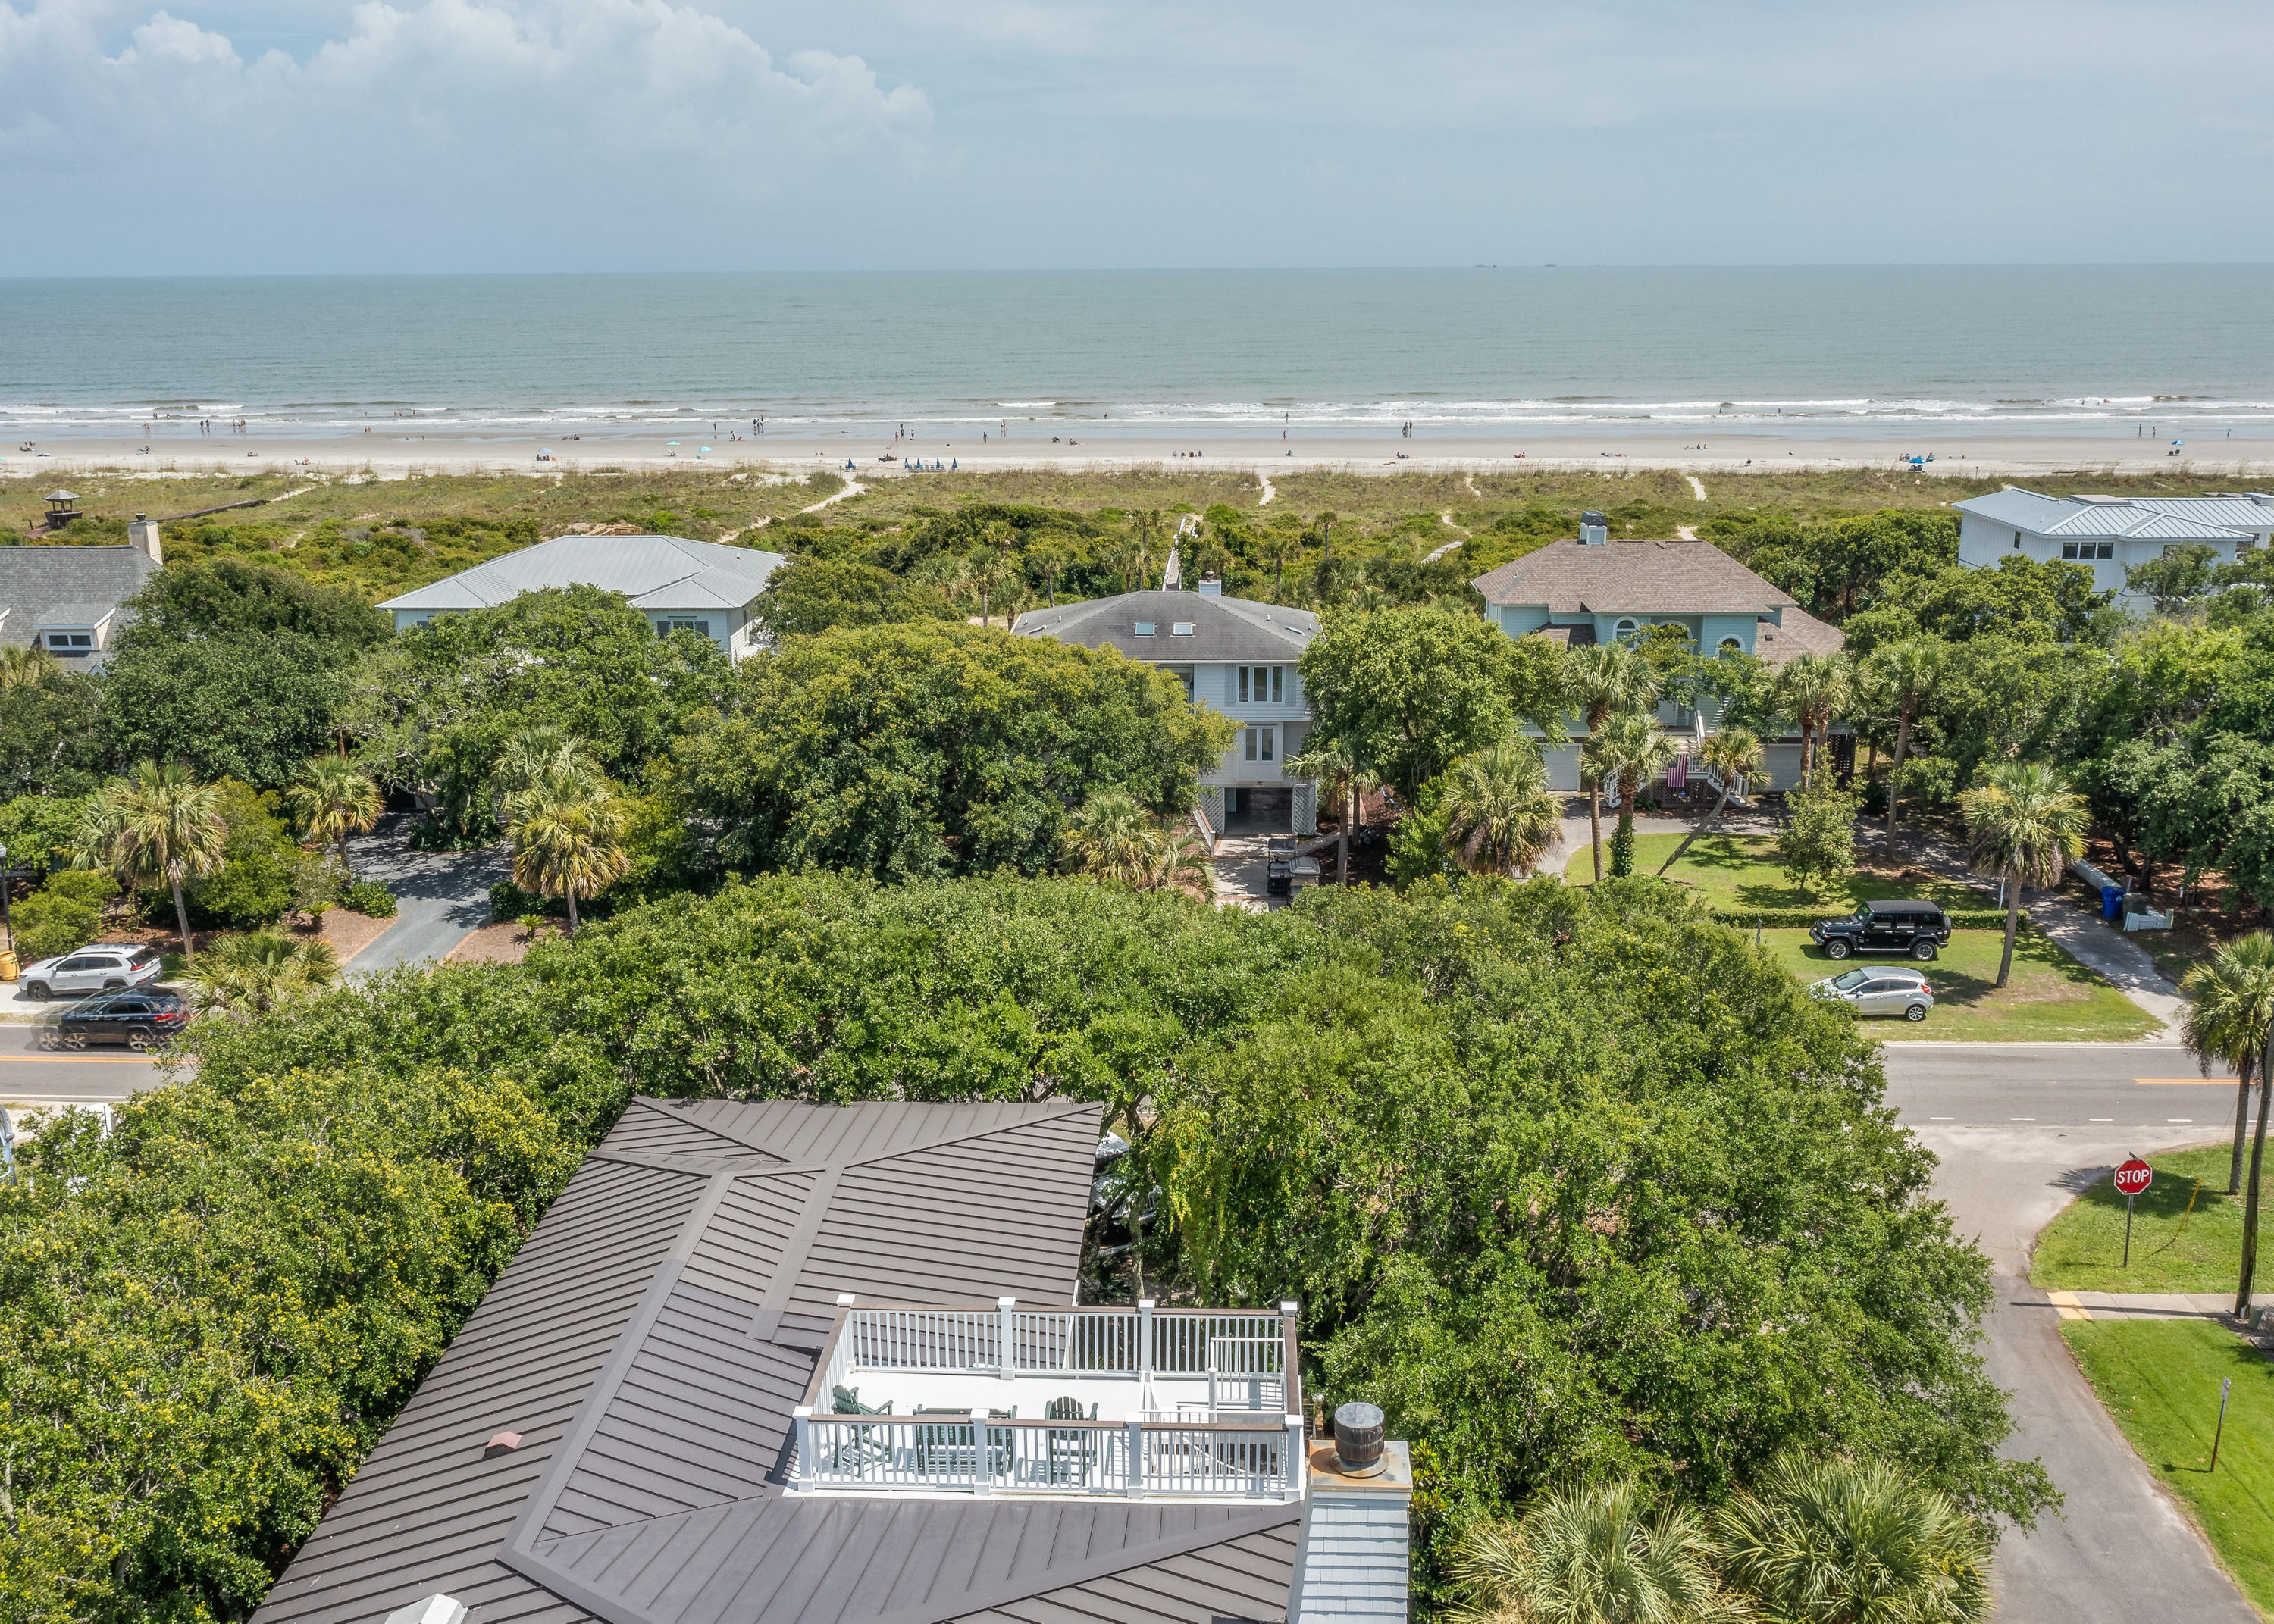 Isle of Palms Homes For Sale - 3301 Palm, Isle of Palms, SC - 31